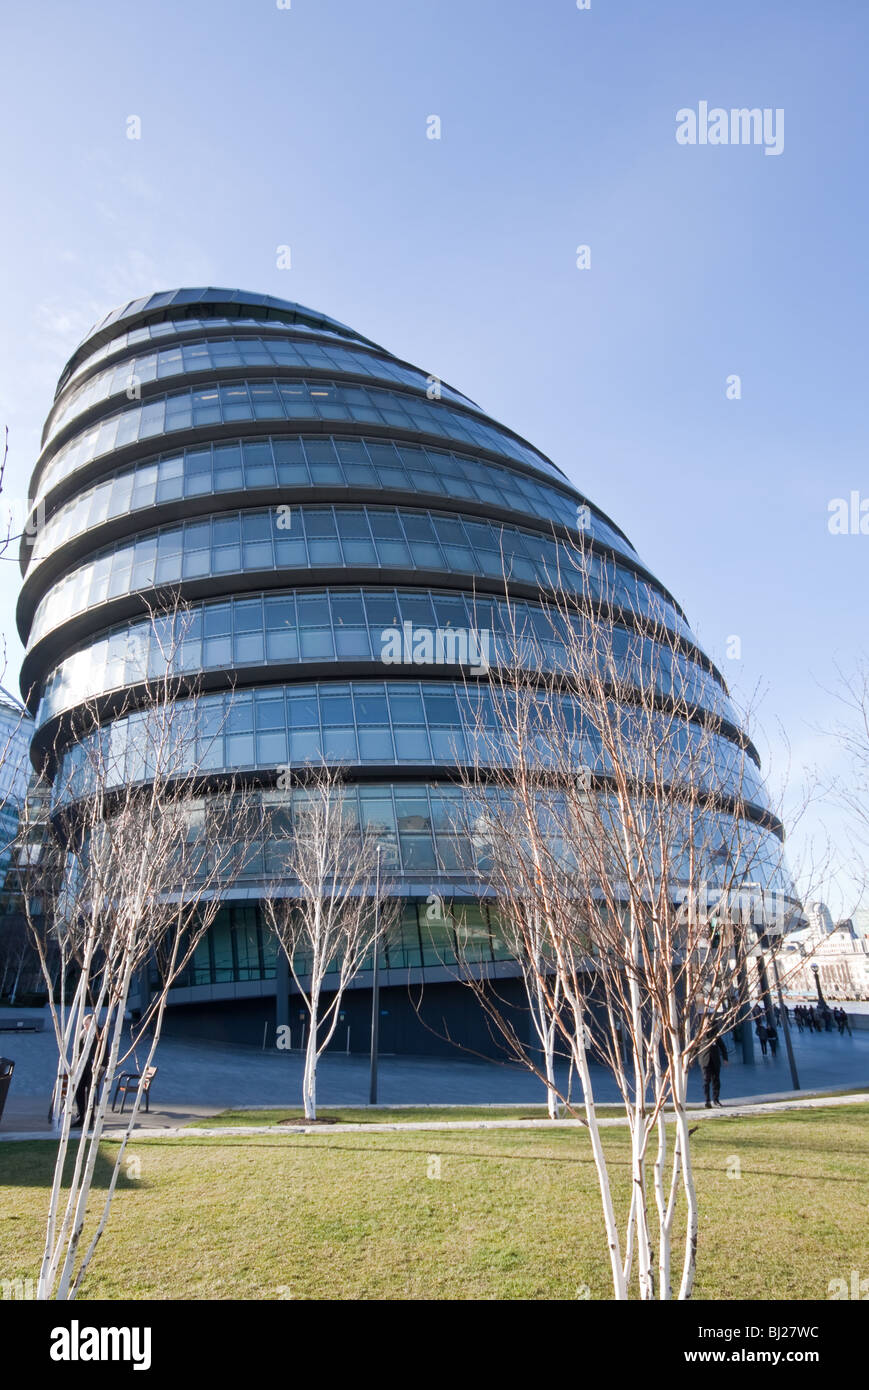 City Hall London Headquarters of the Greater London Authority - Stock Image